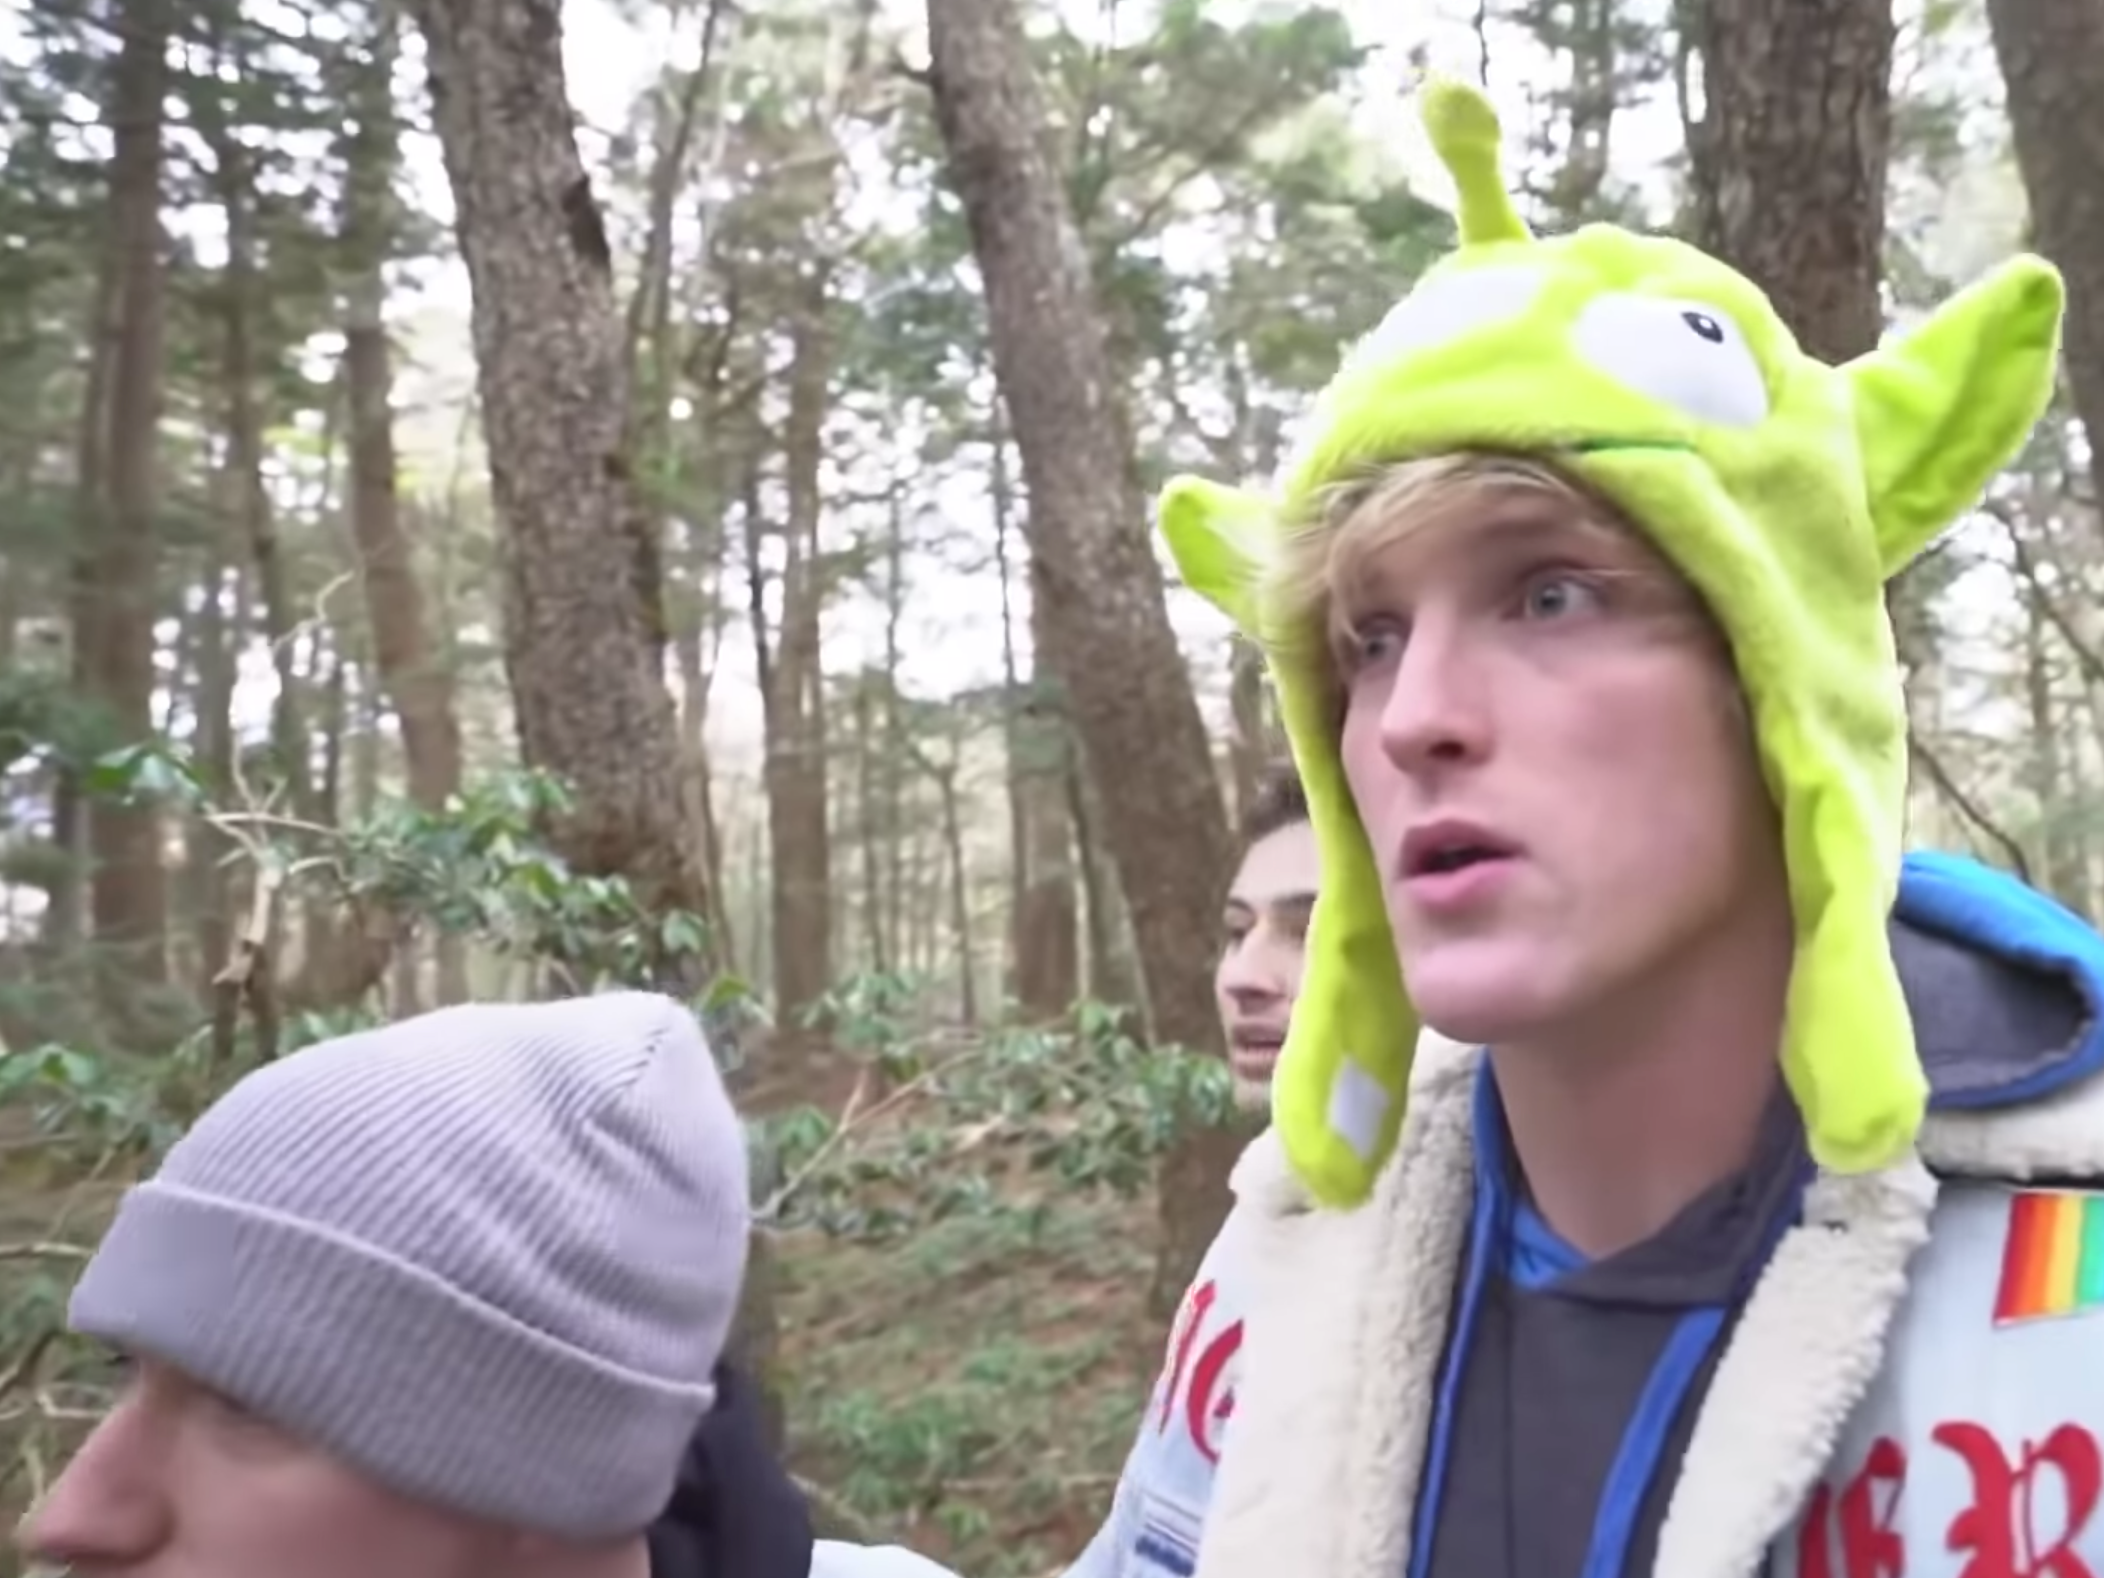 January Is Less Than Two Days Old And Already We Have A Reminder Of The Bad  Side Of YouTube After It Emerged That Logan Paul, A Brash 22 Year Old With  Over ...